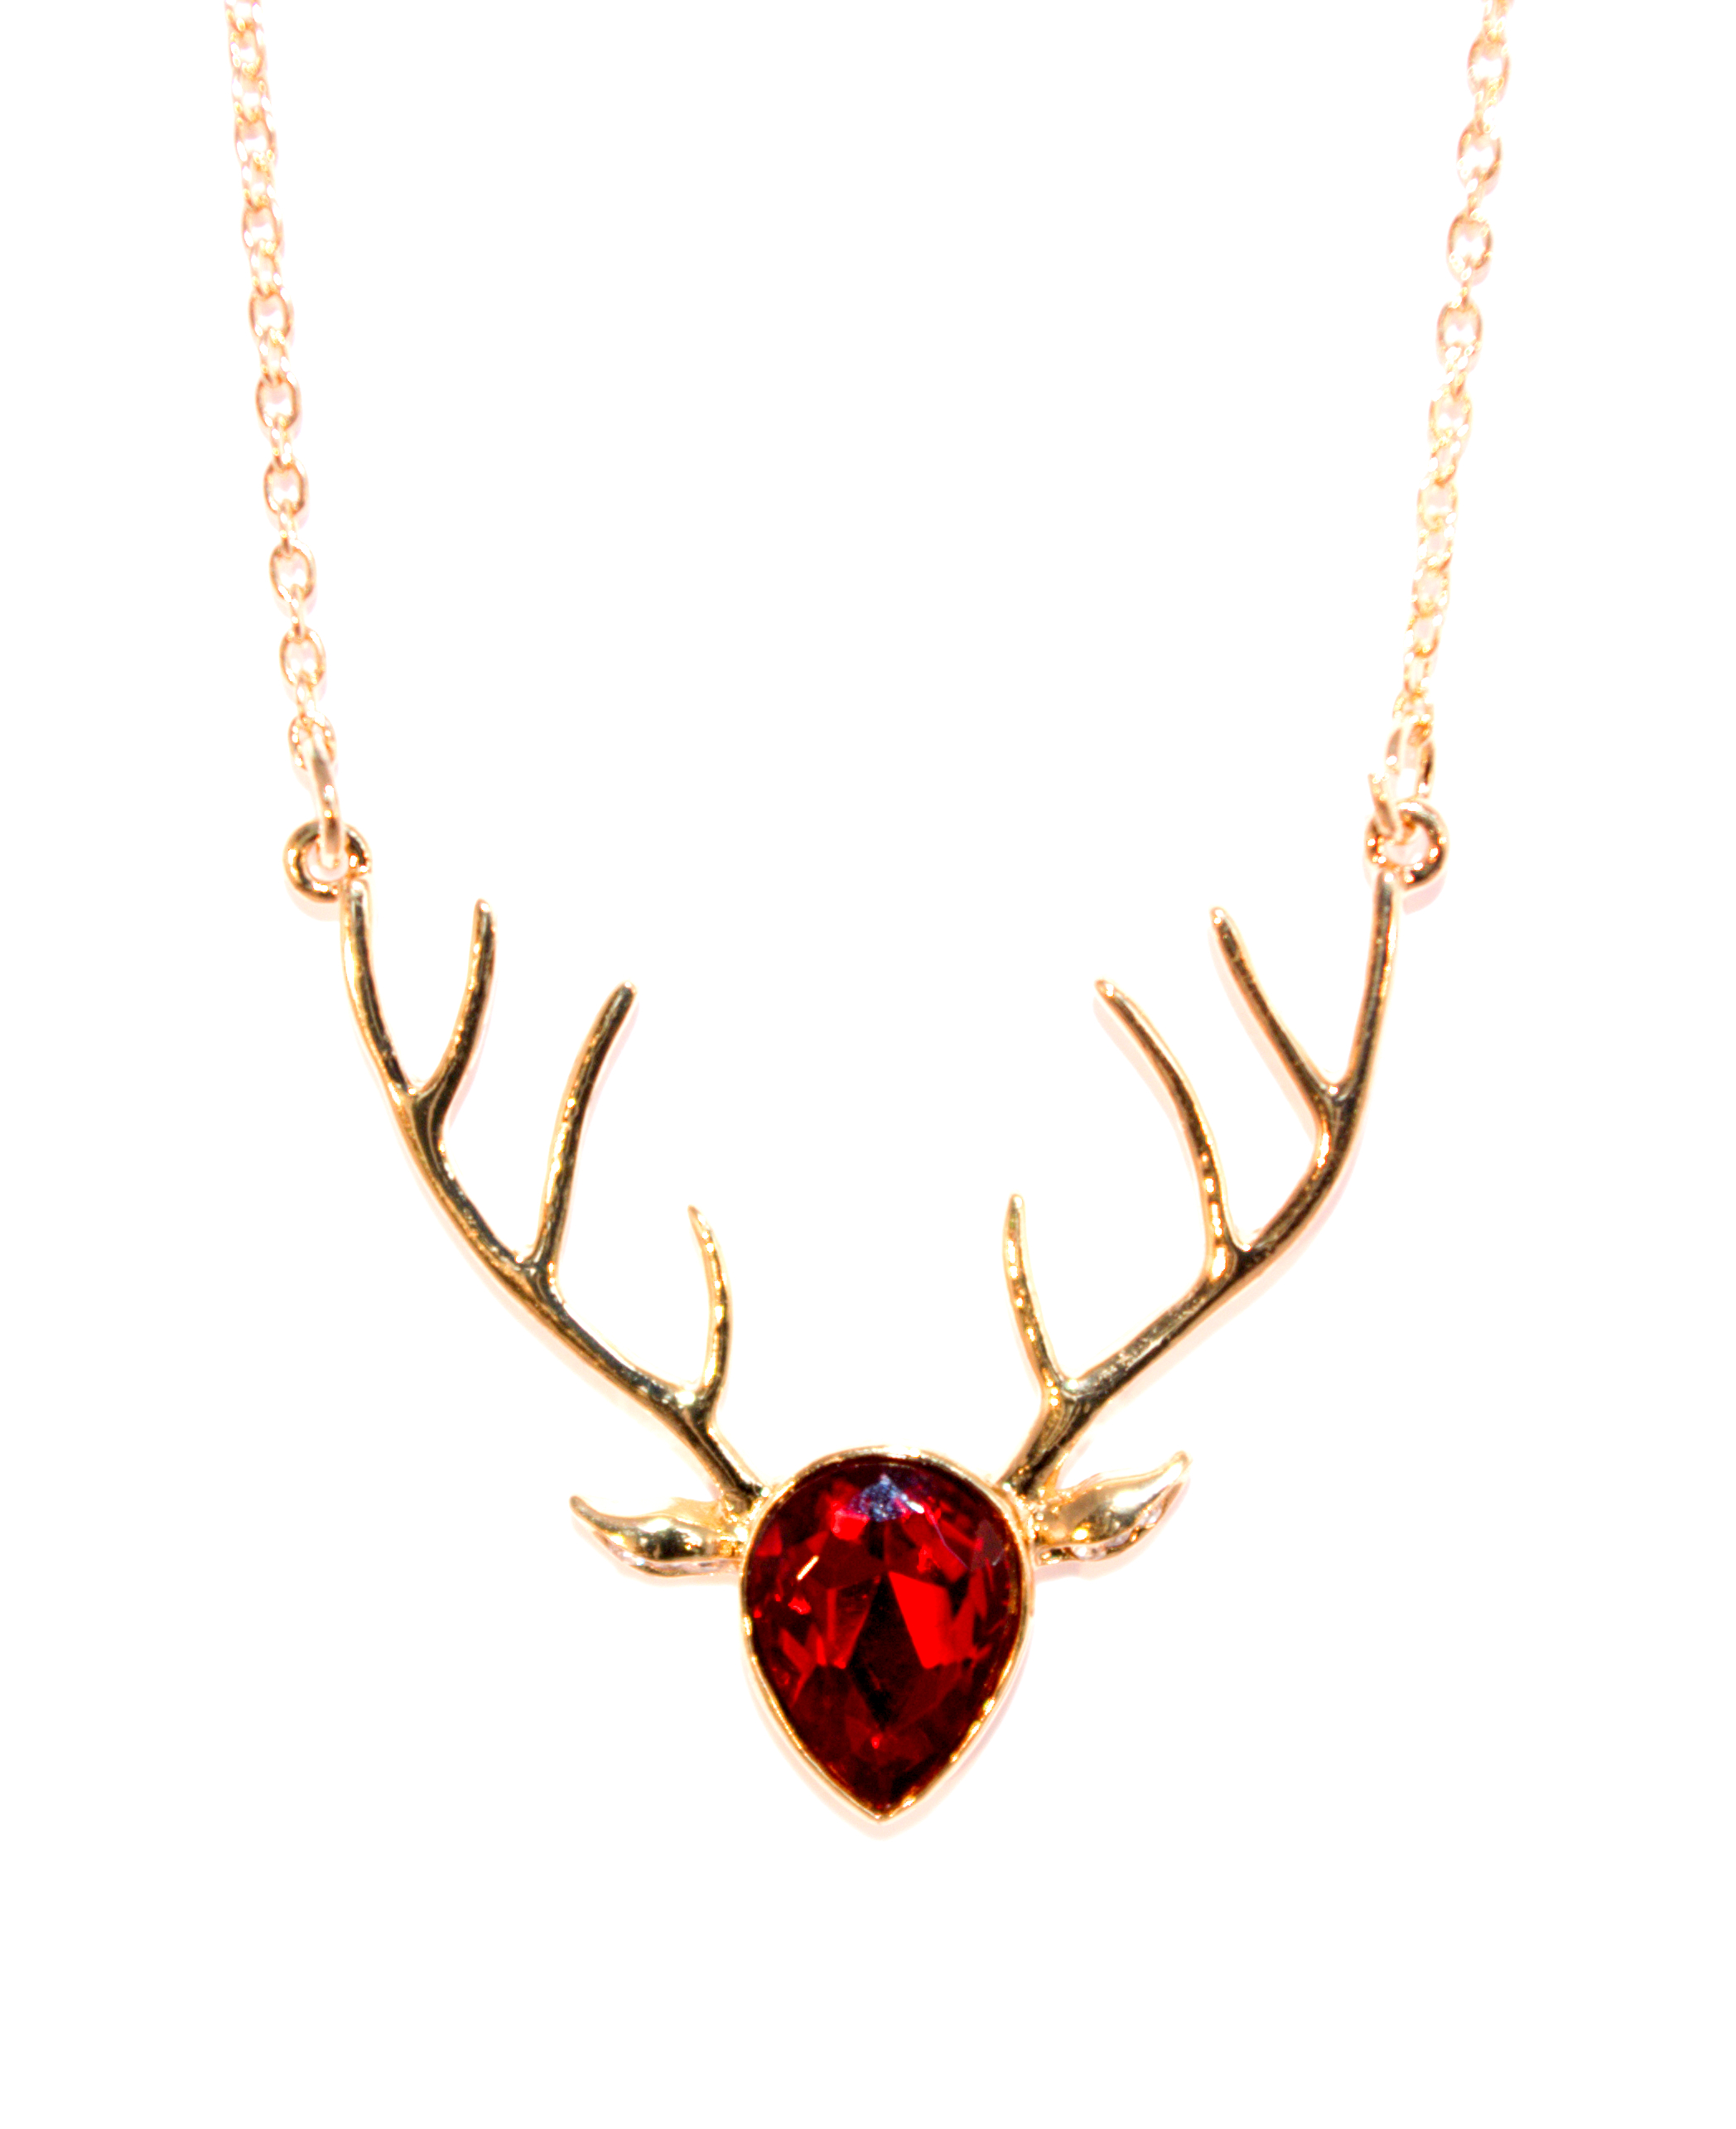 boxed birthday gift deer necklace antler collections layering best her il products fullxfull bridesmaids friend for